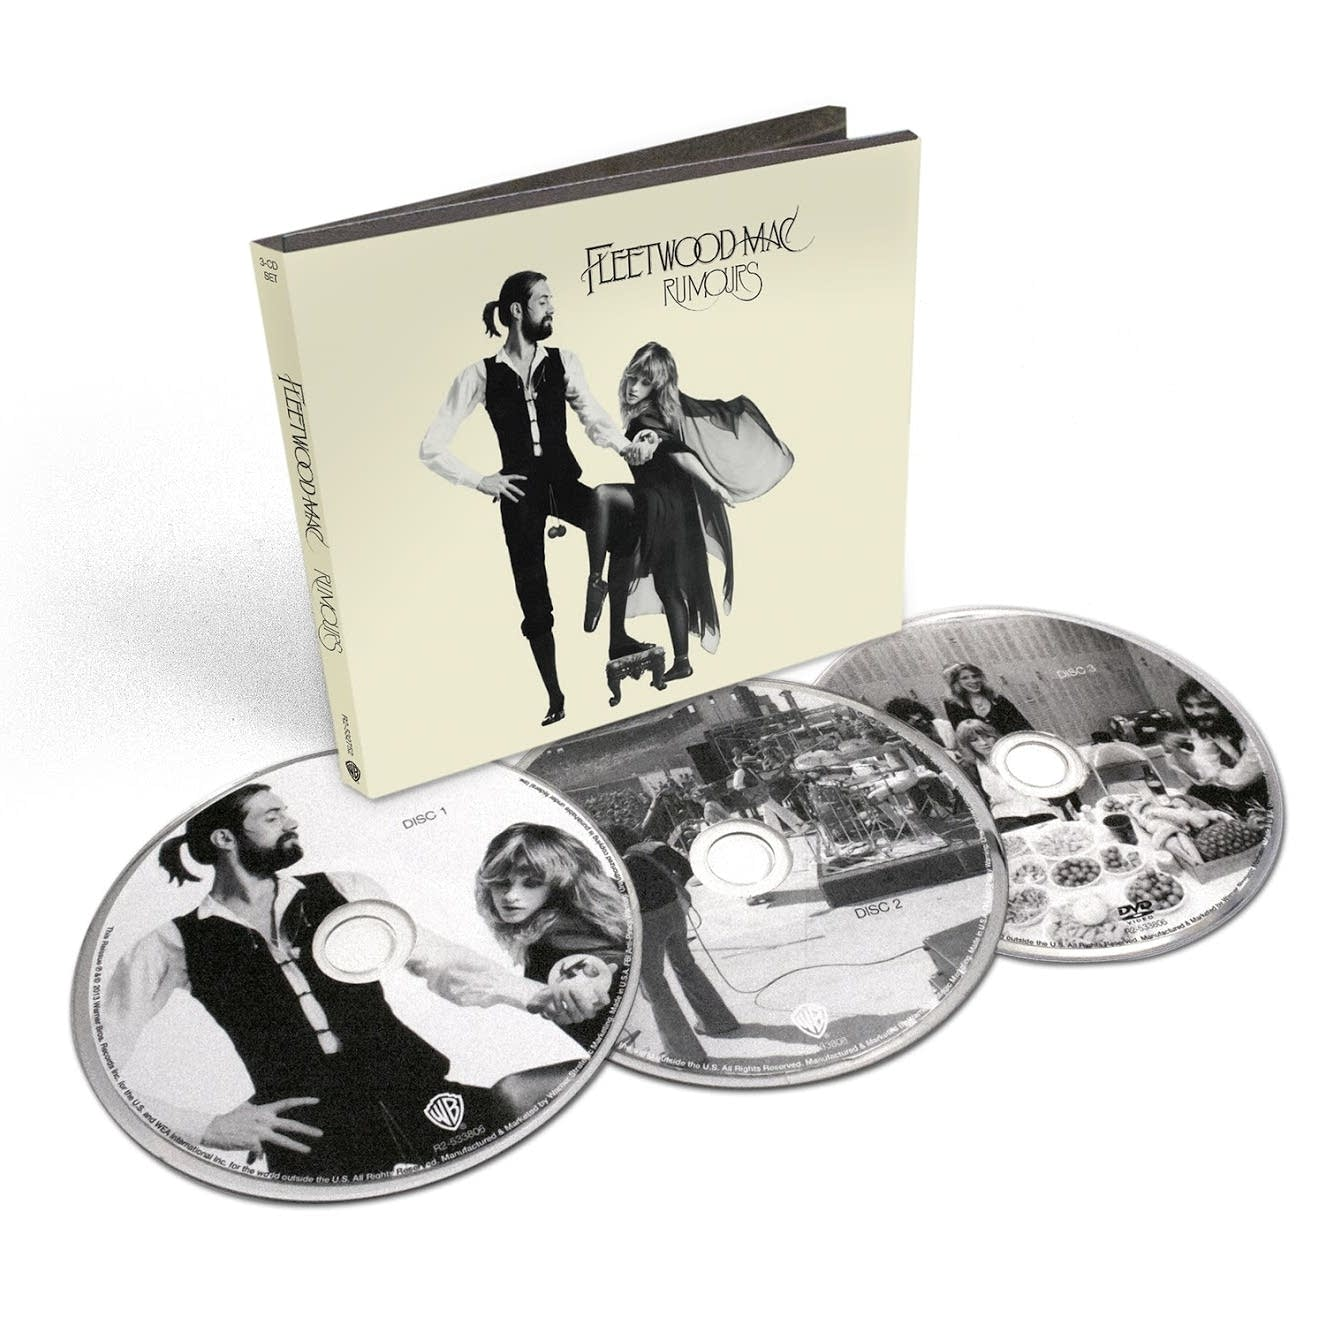 Fleetwood Mac Rumours Deluxe Edition